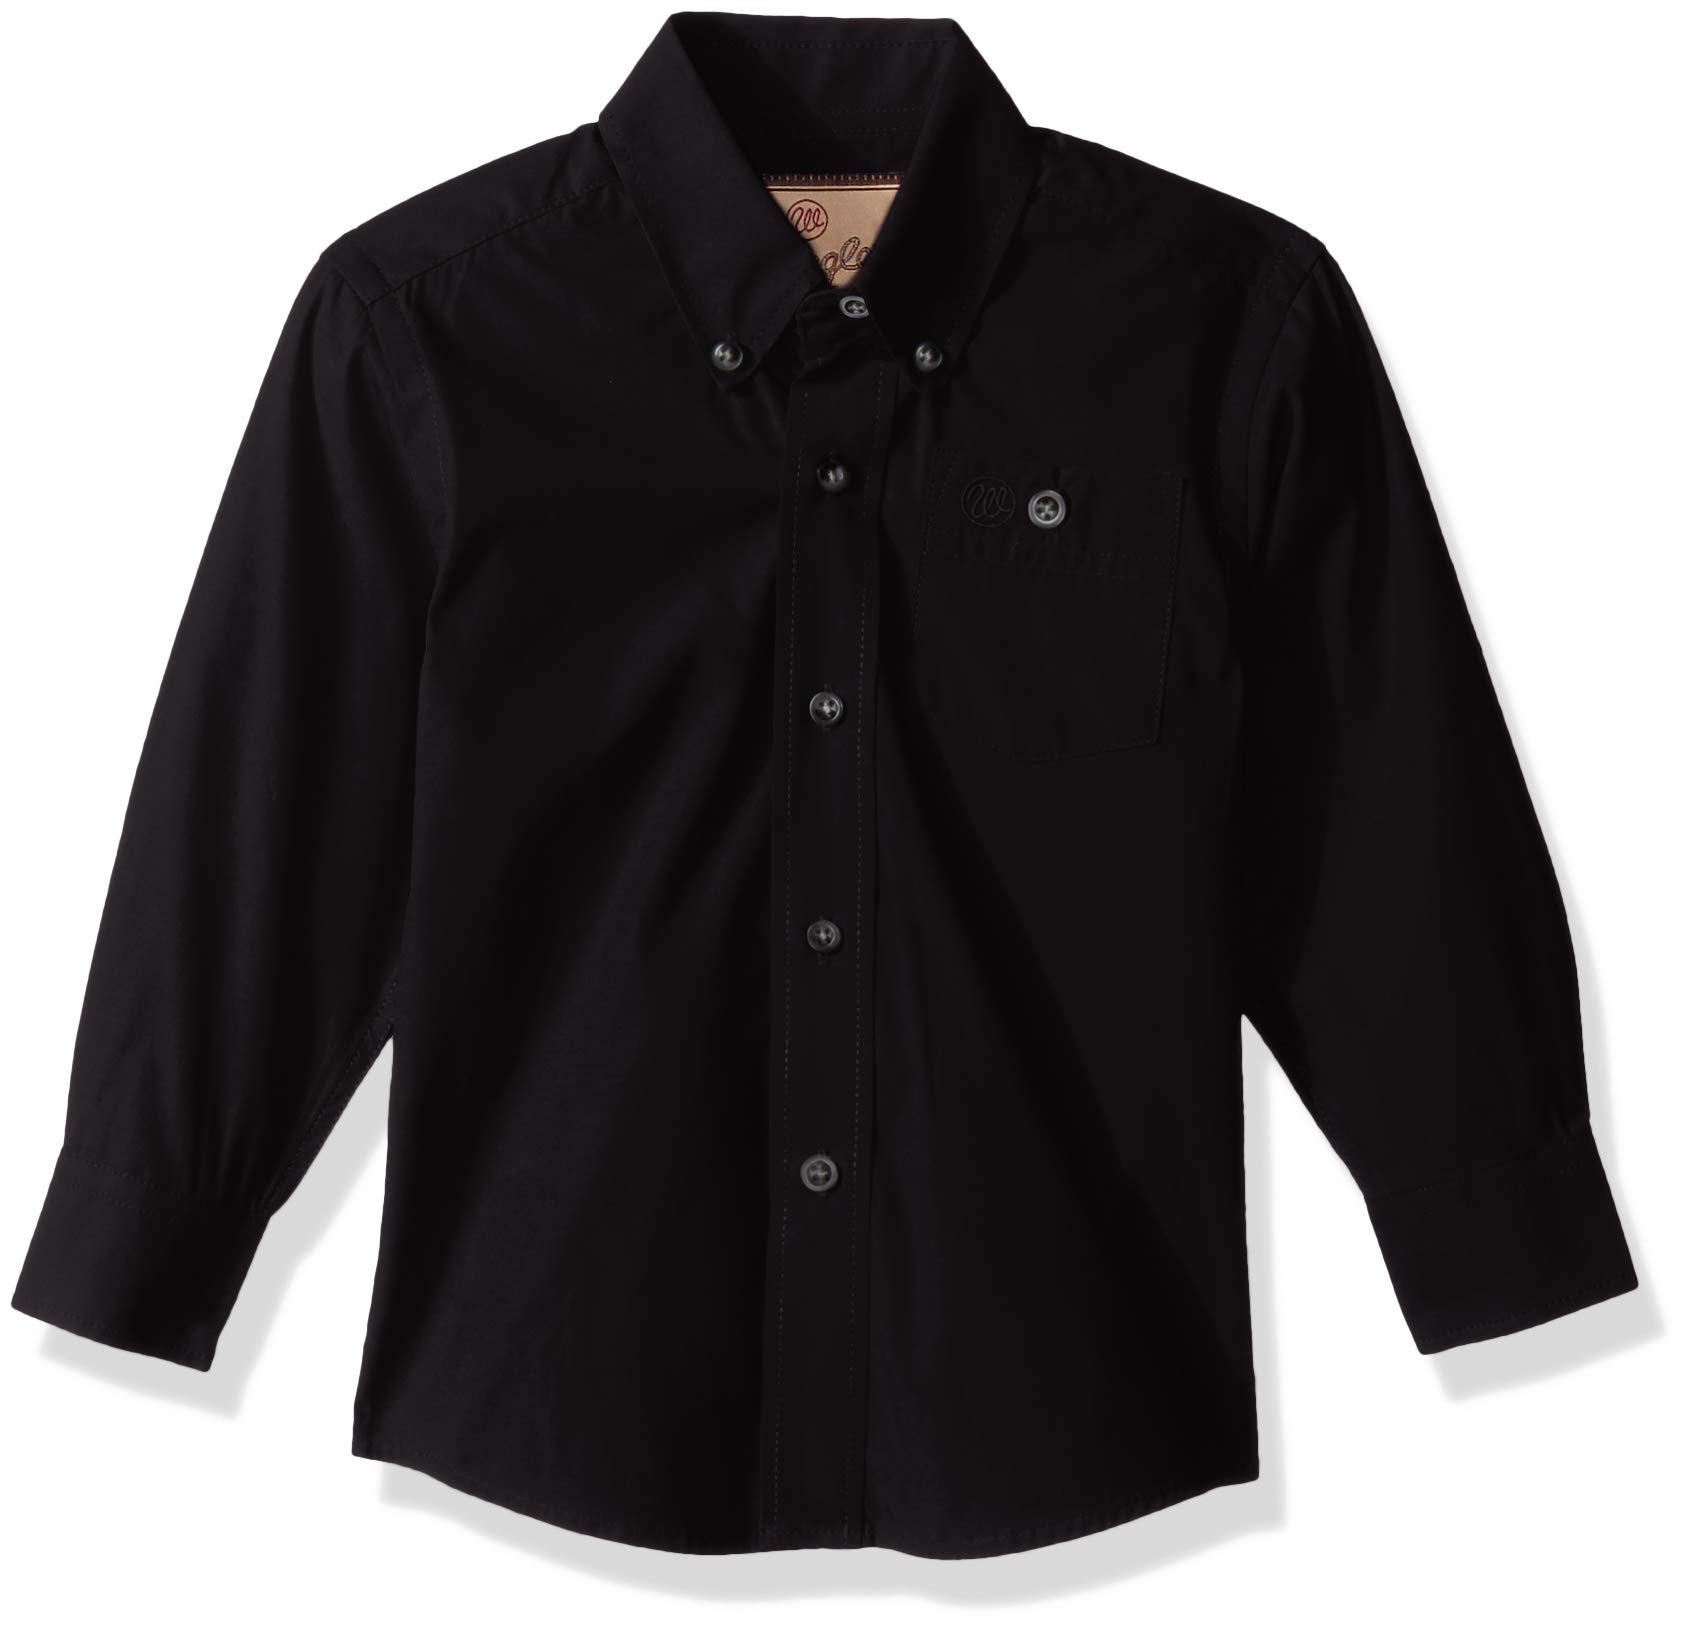 Wrangler Boys' Classic One Pocket Long Sleeve Button Shirt, Black, XXS